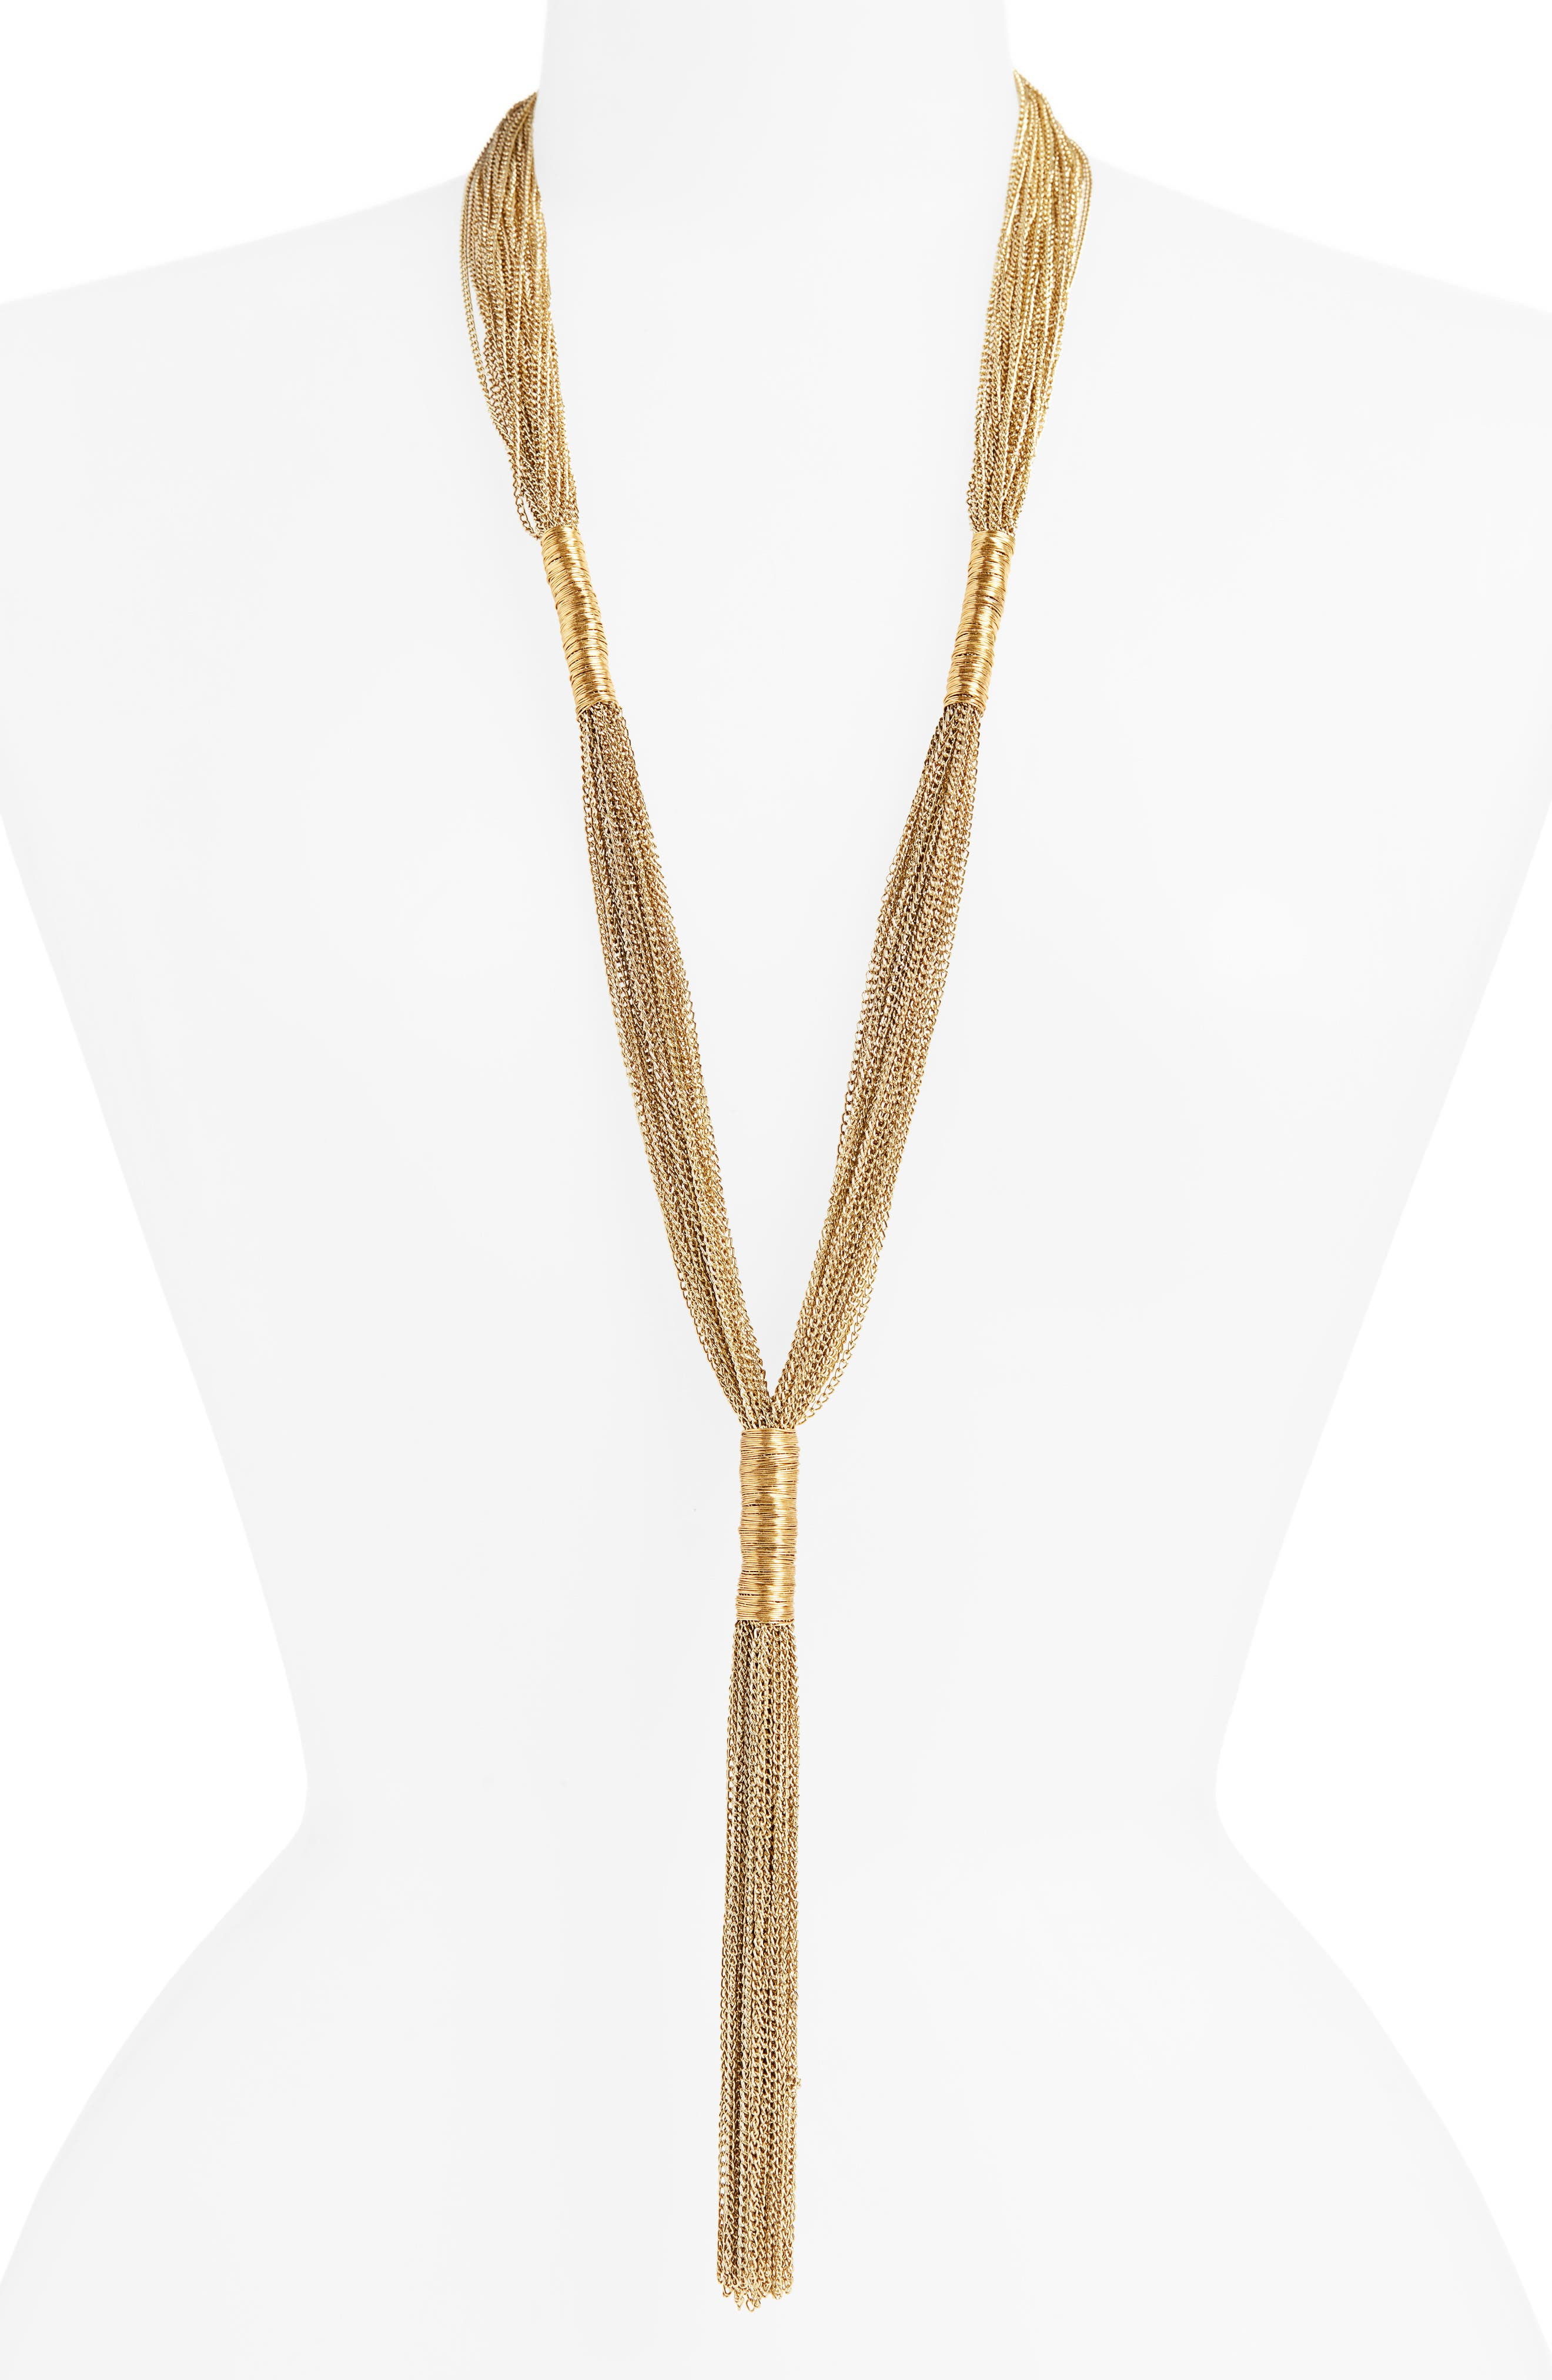 AREA STARS Normandie Multistrand Y-Necklace in Gold